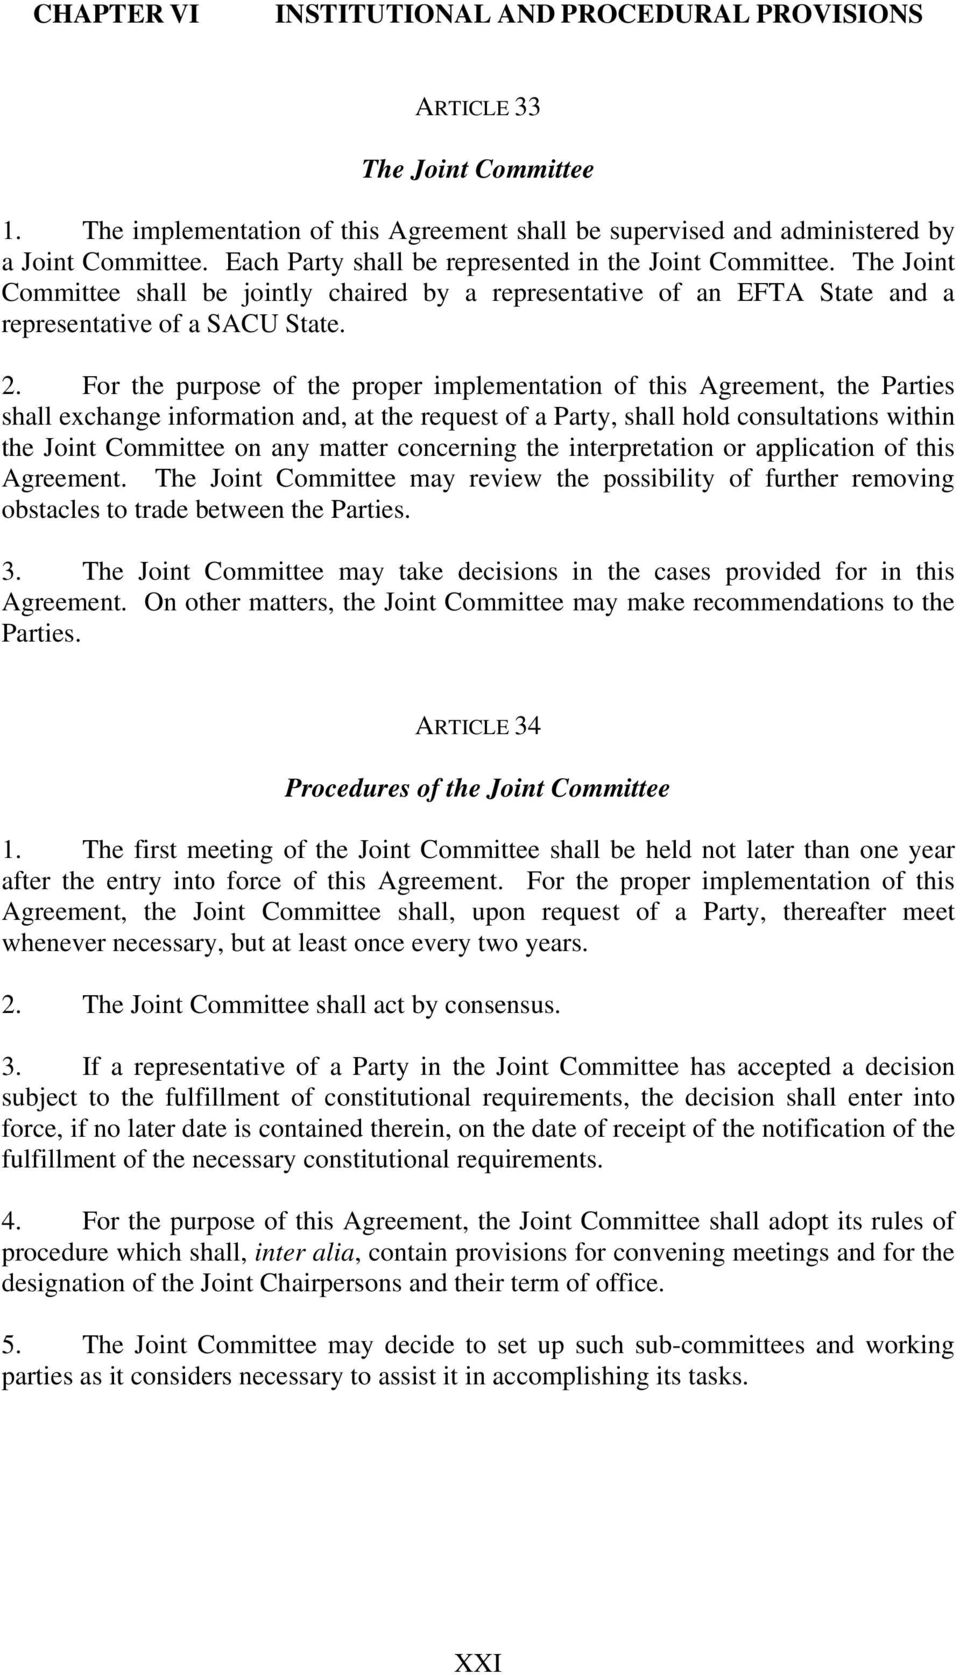 For the purpose of the proper implementation of this Agreement, the Parties shall exchange information and, at the request of a Party, shall hold consultations within the Joint Committee on any